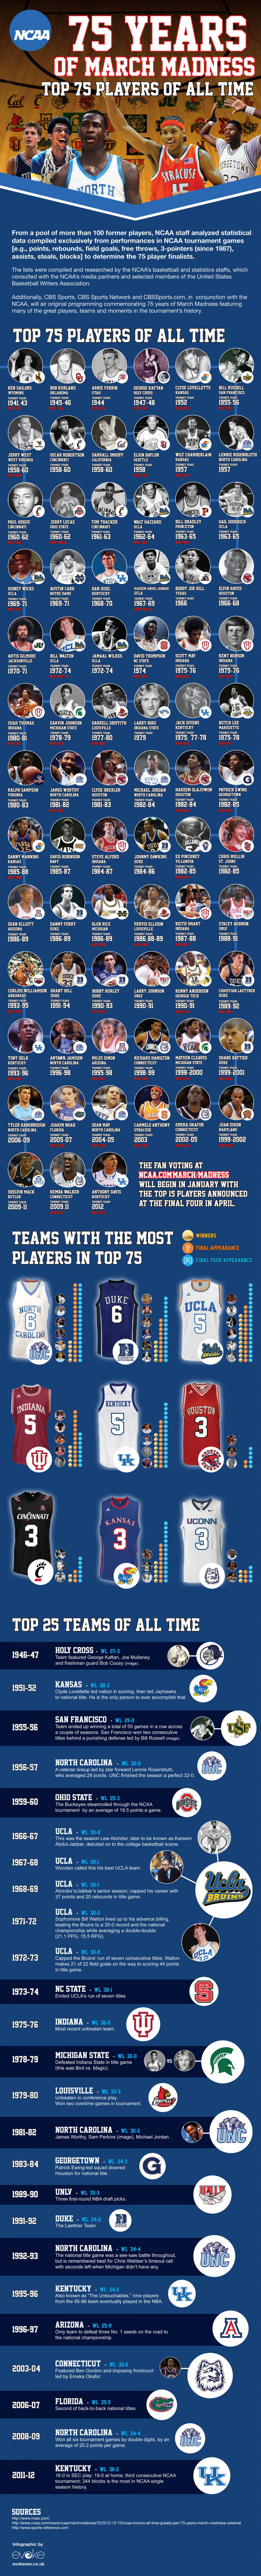 The NCAA Top 75 Players Of All Time Infographic